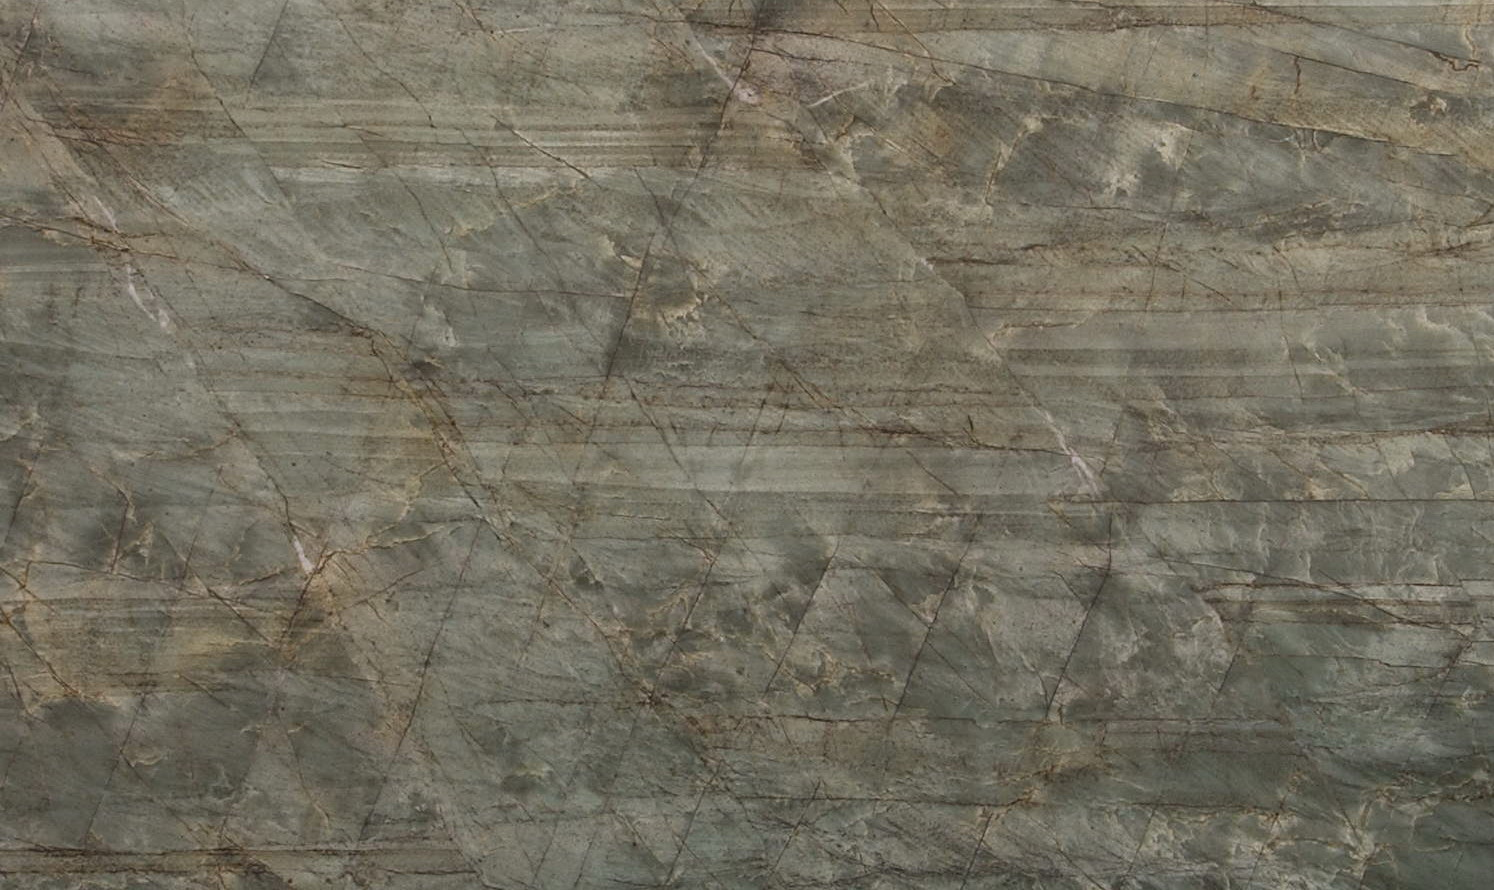 Emerald Quartzite Quartz Tiles Slabs And Countertops